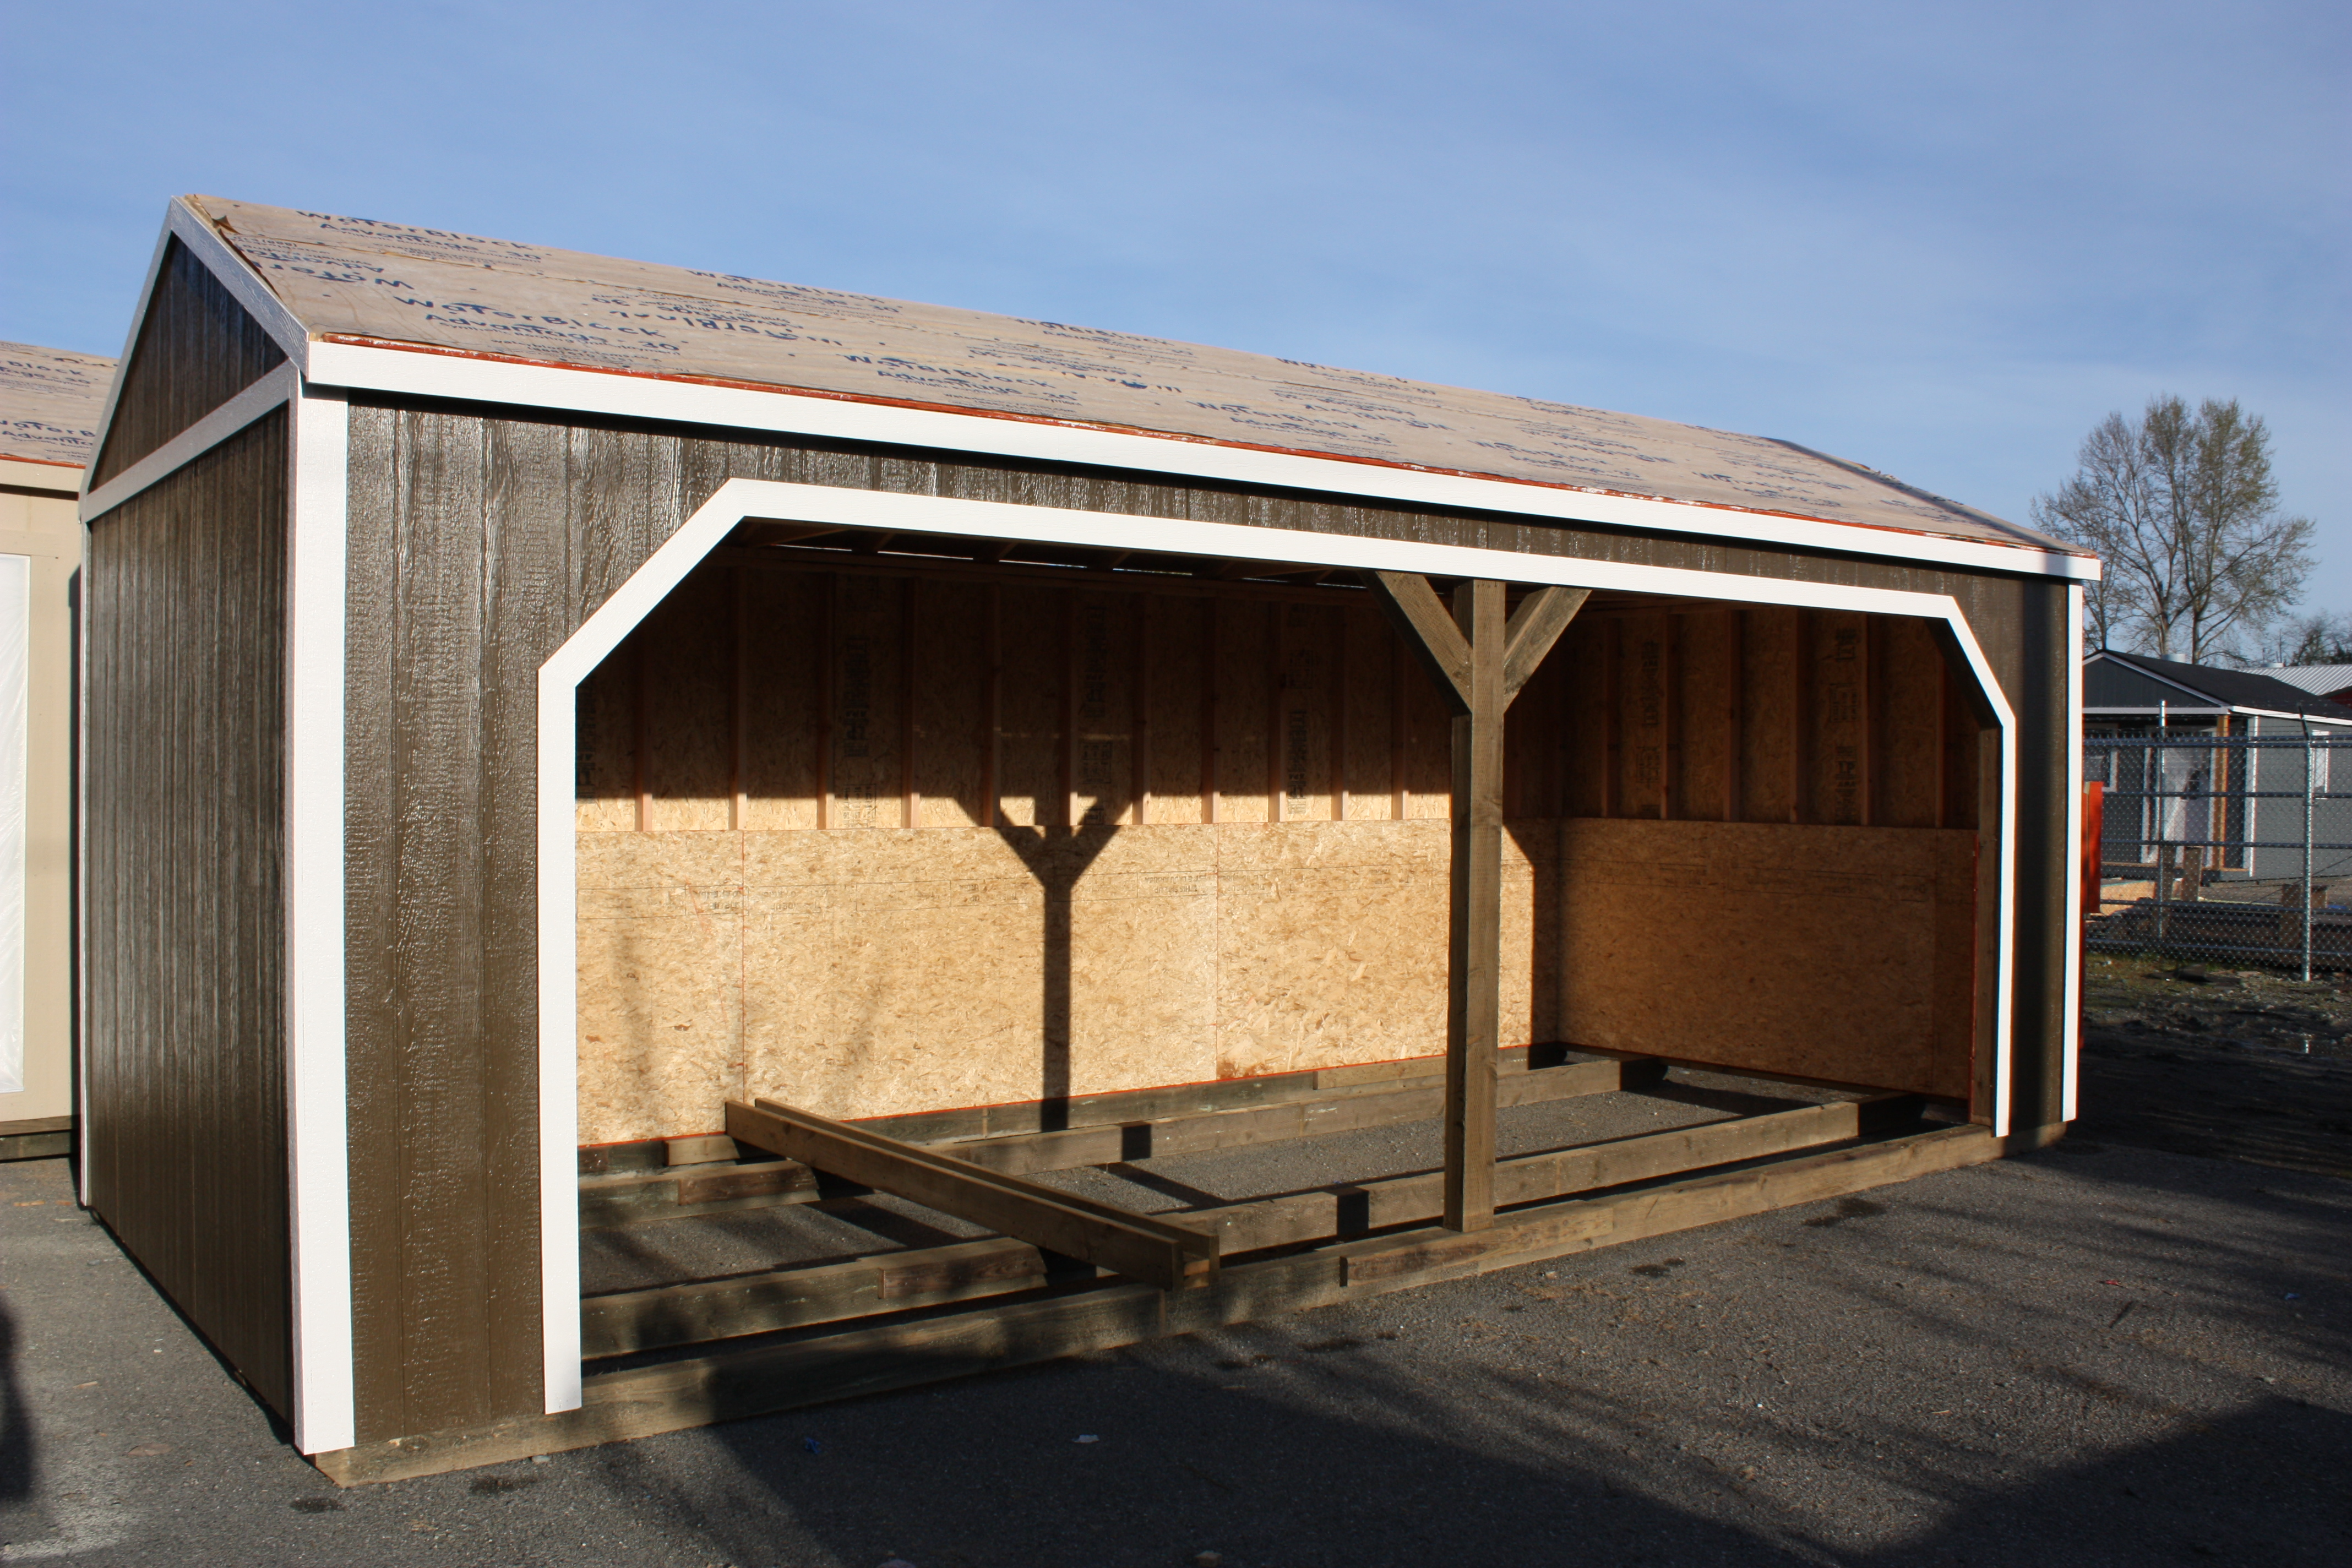 See our website for additional details on sheds.